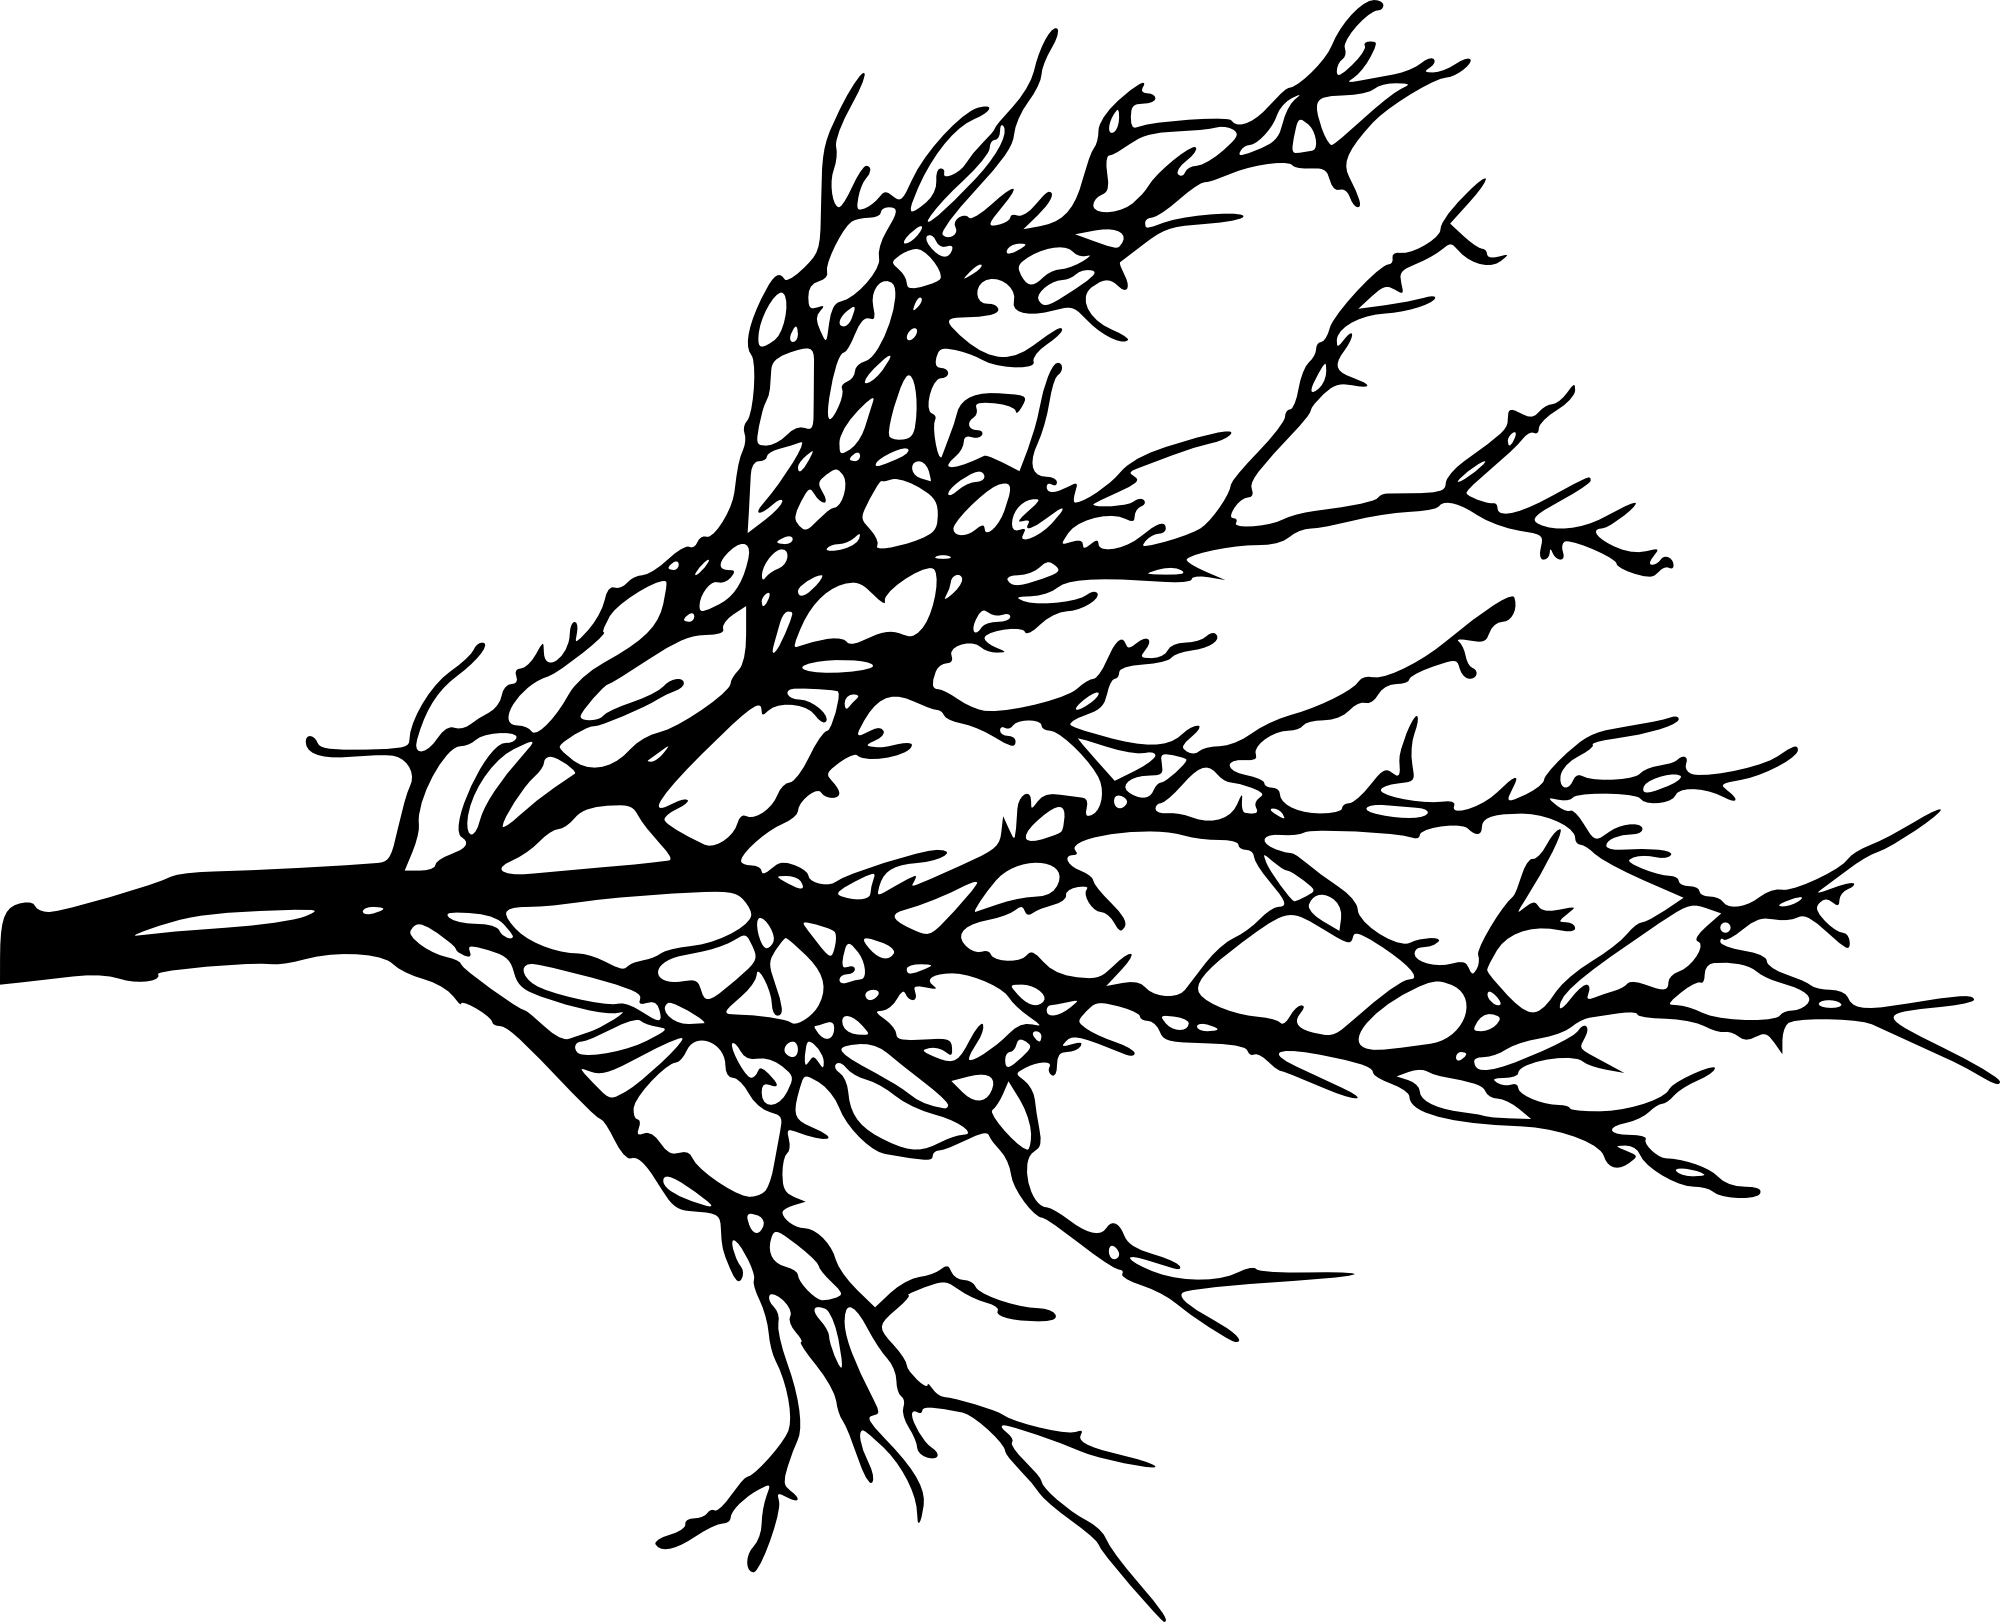 png tree branch